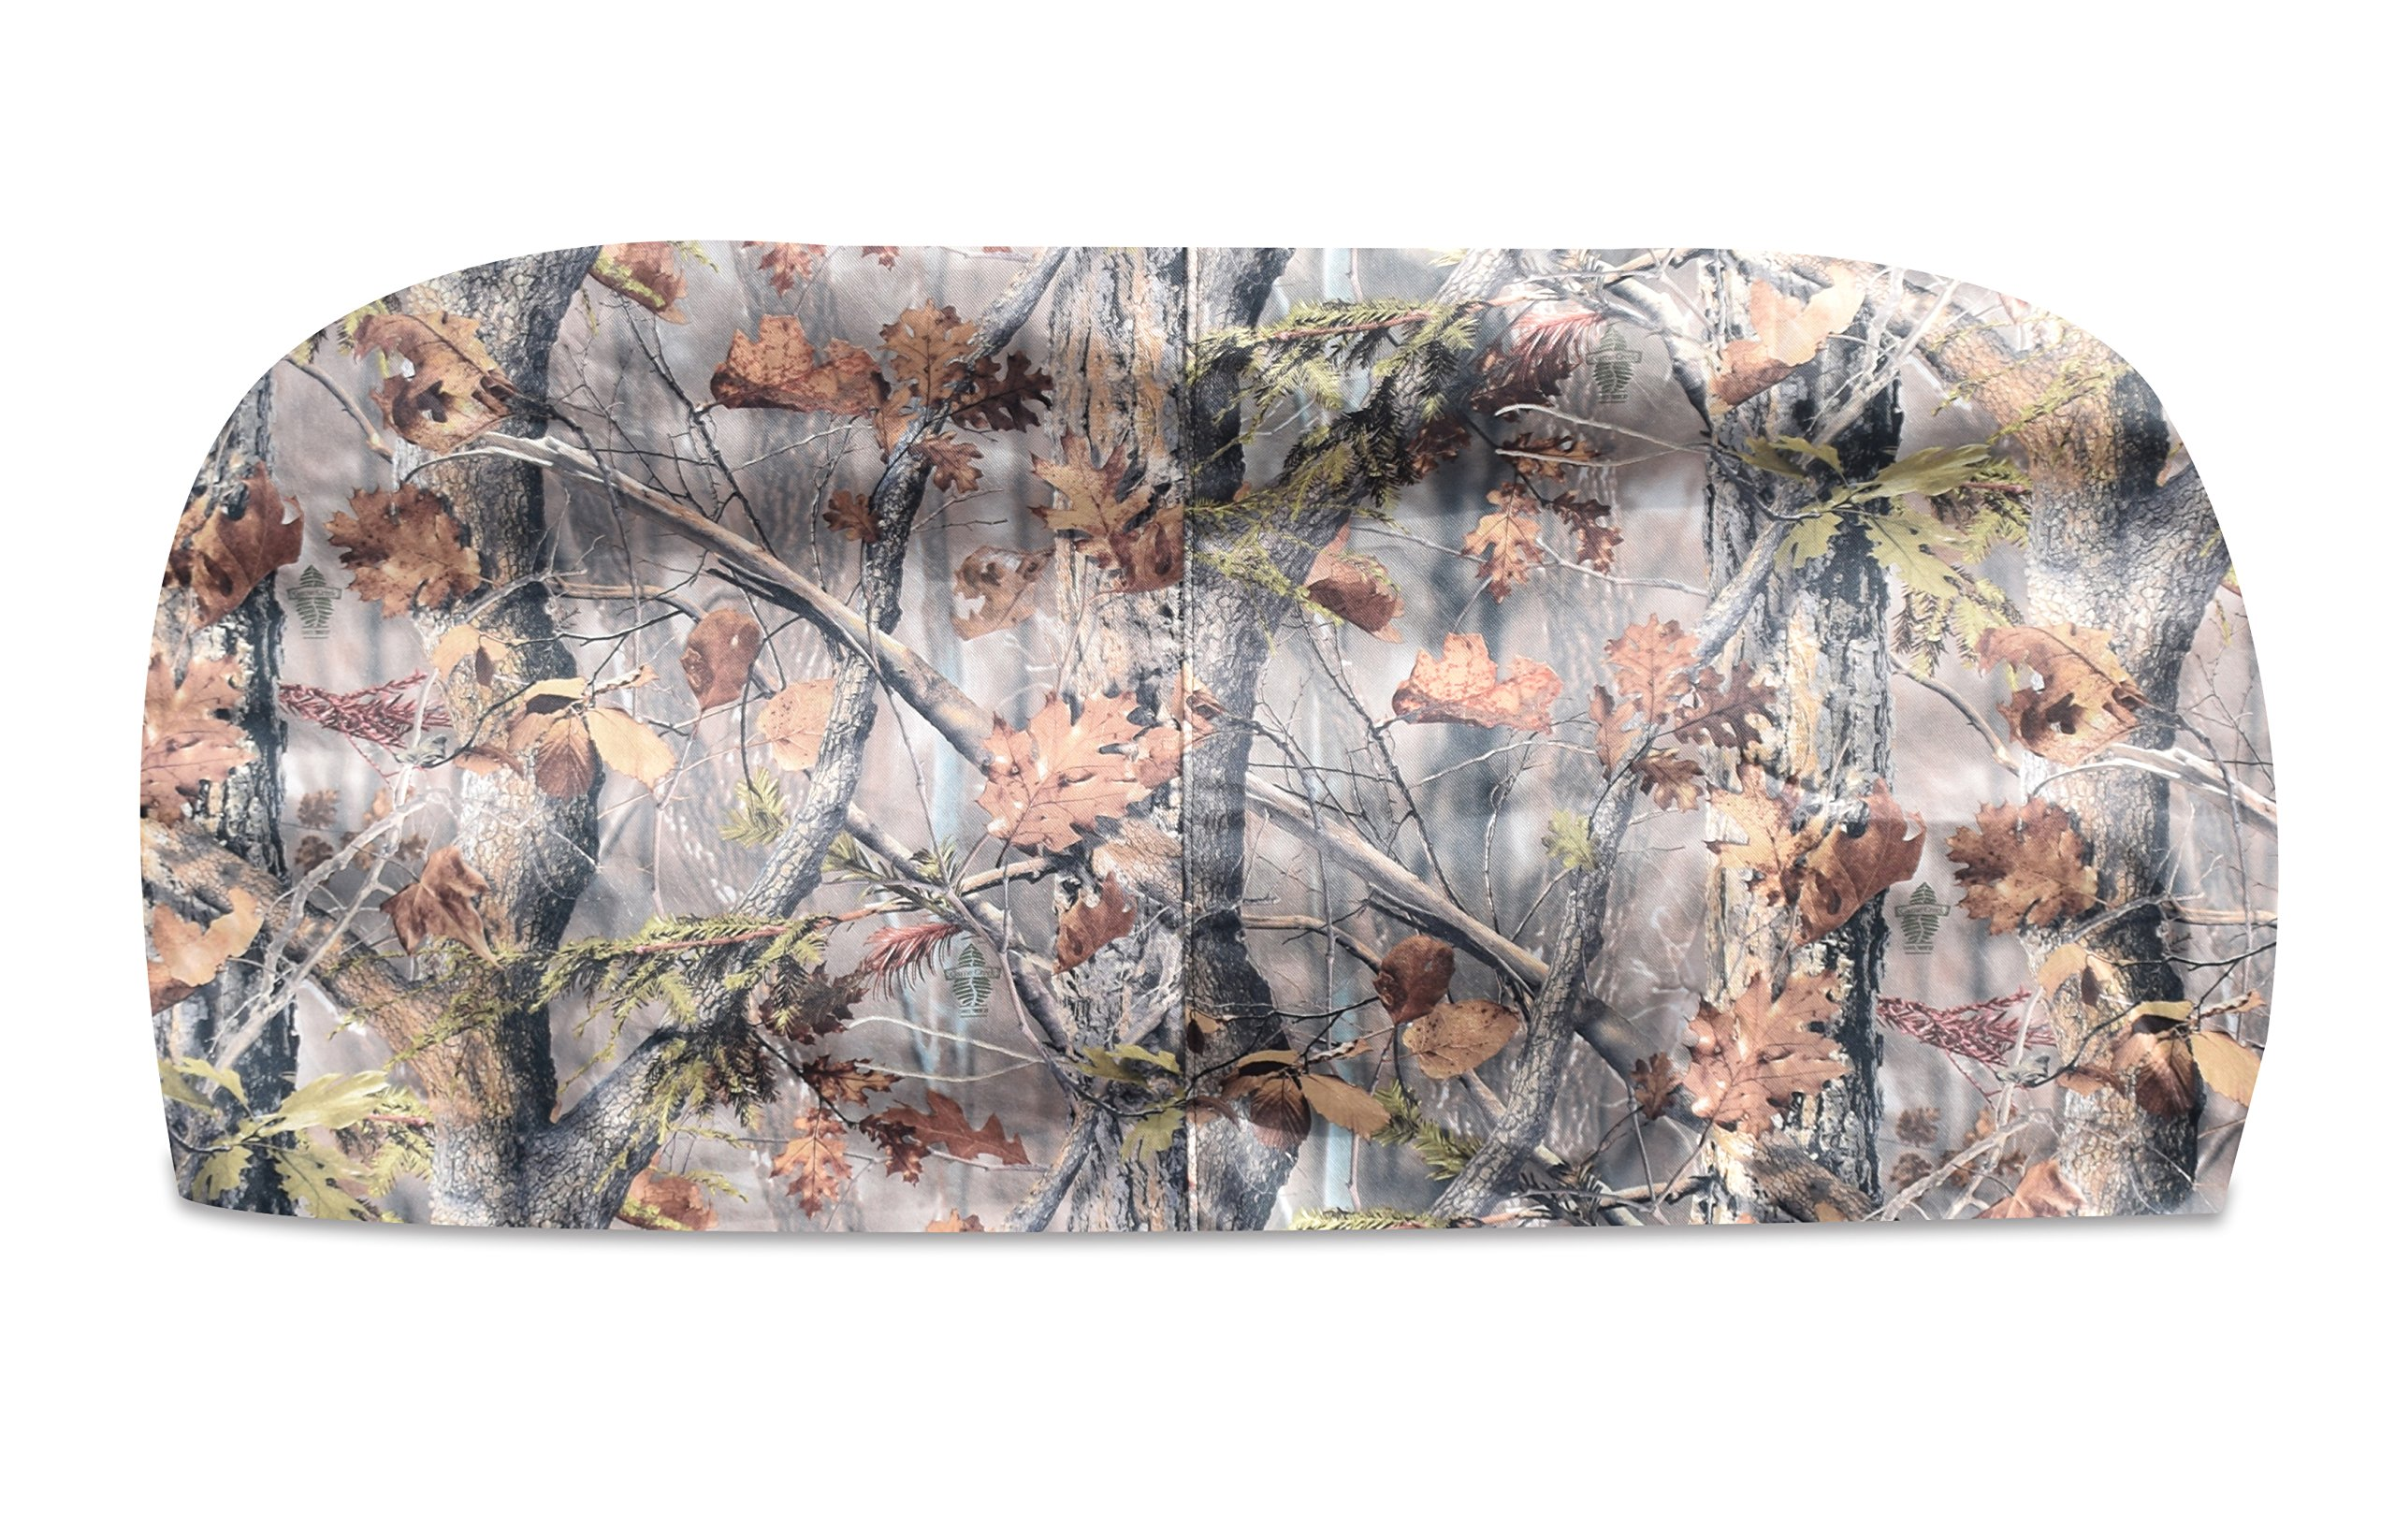 ADCO 3623 Camouflage Multi Axle Double Game Creek Oaks Tyre Gard Wheel Cover, (Fits 27''-29'') by ADCO